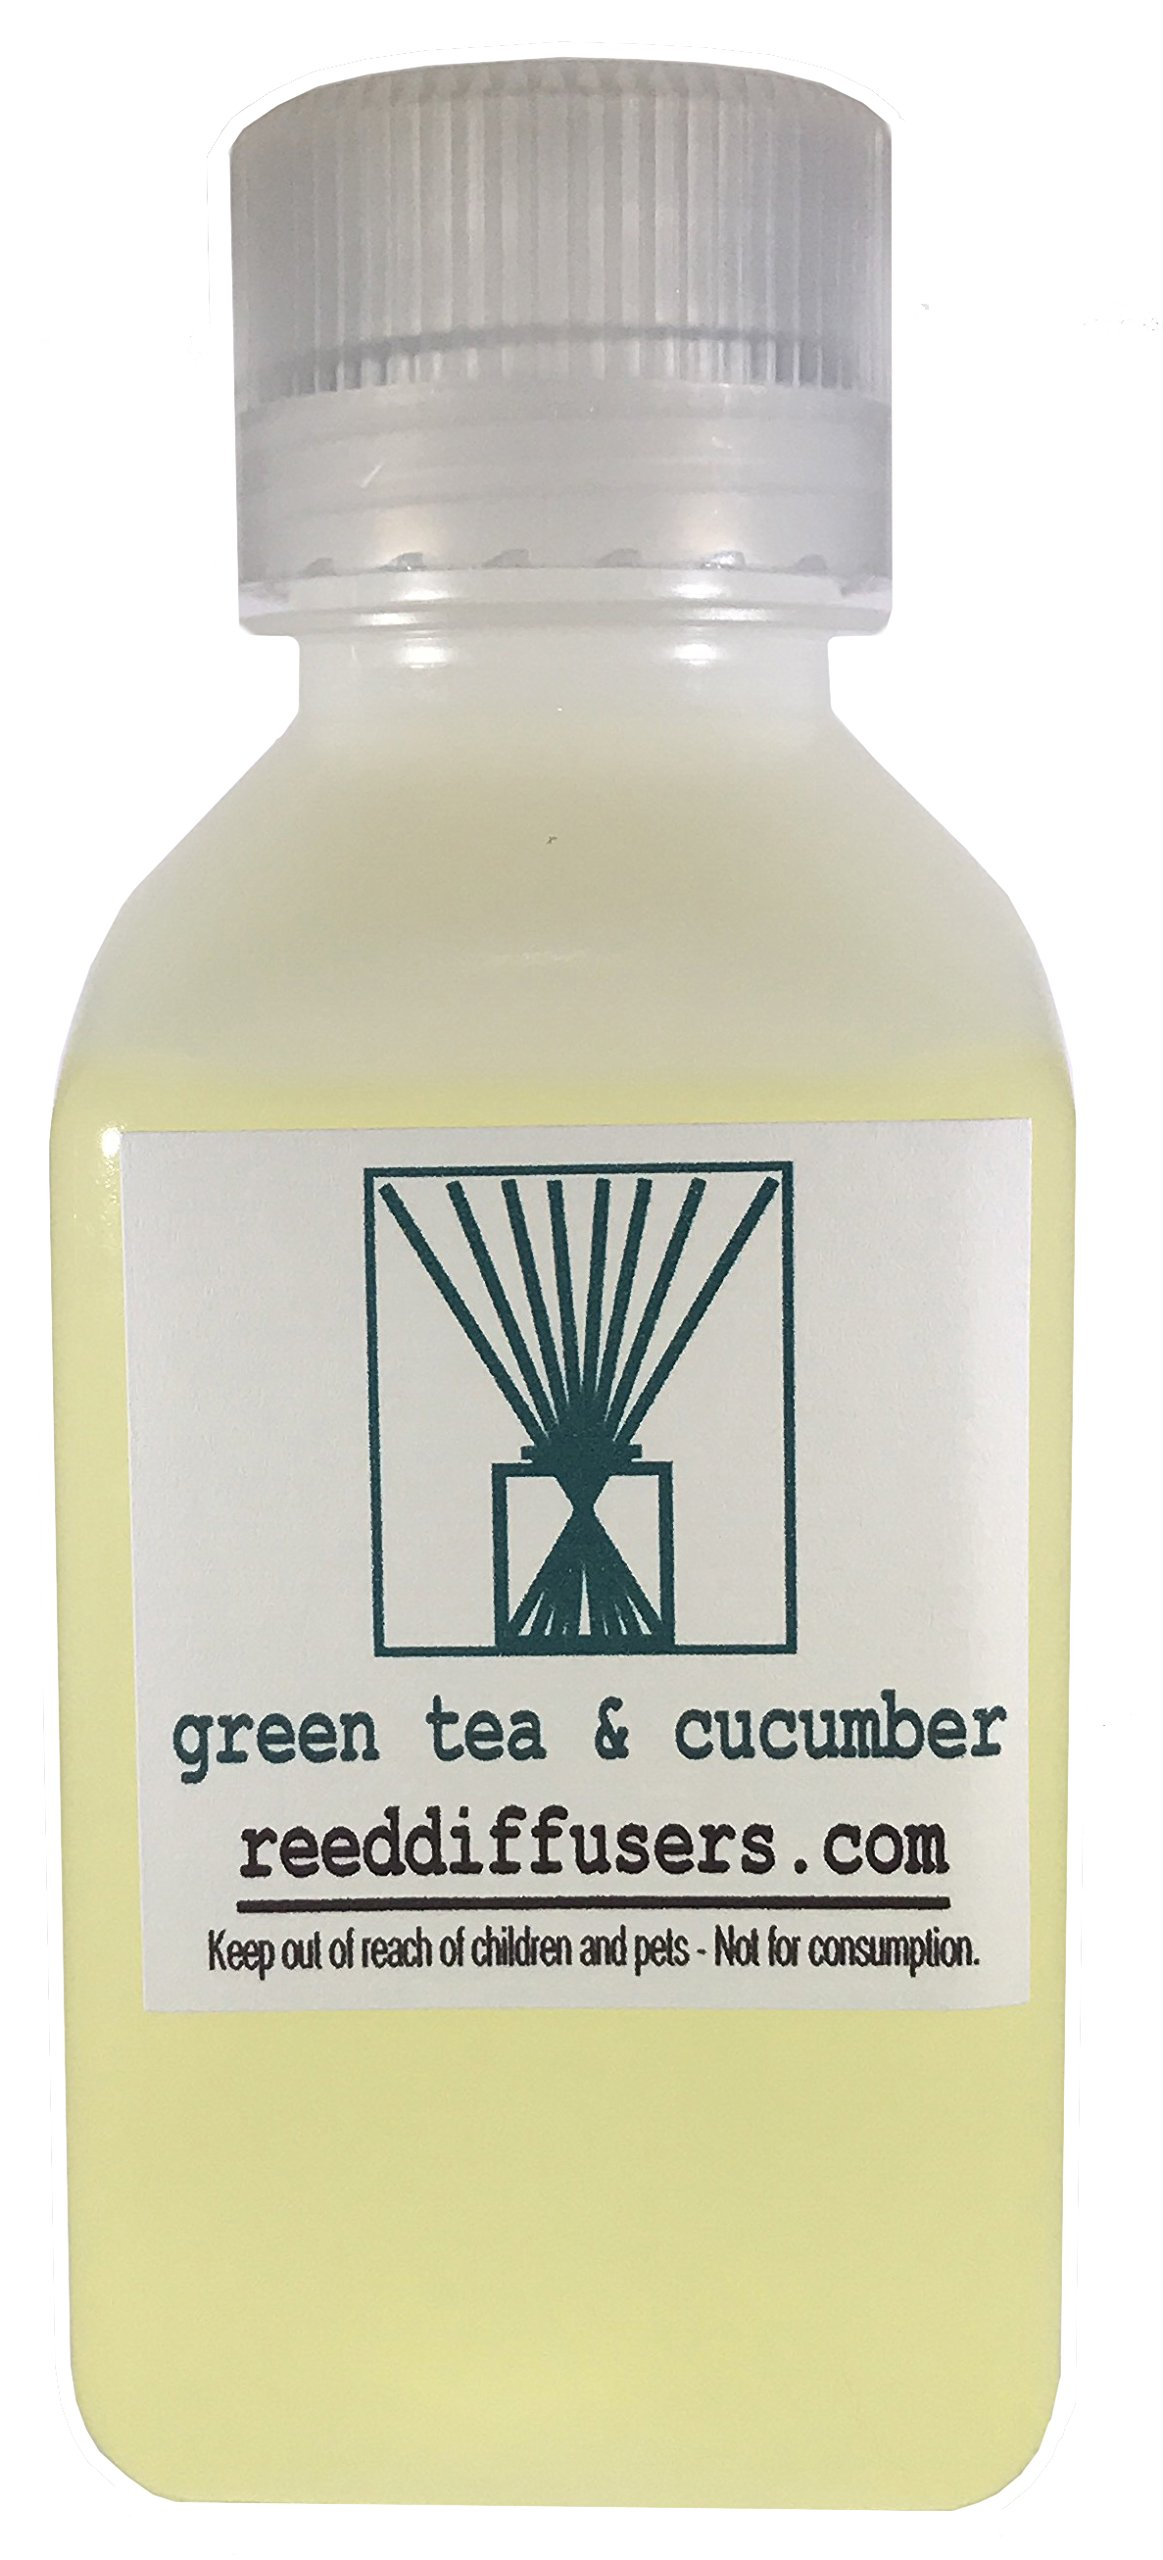 Green Tea & Cucumber Fragrance Reed Diffuser Oil Refill - 8oz - Made in the USA